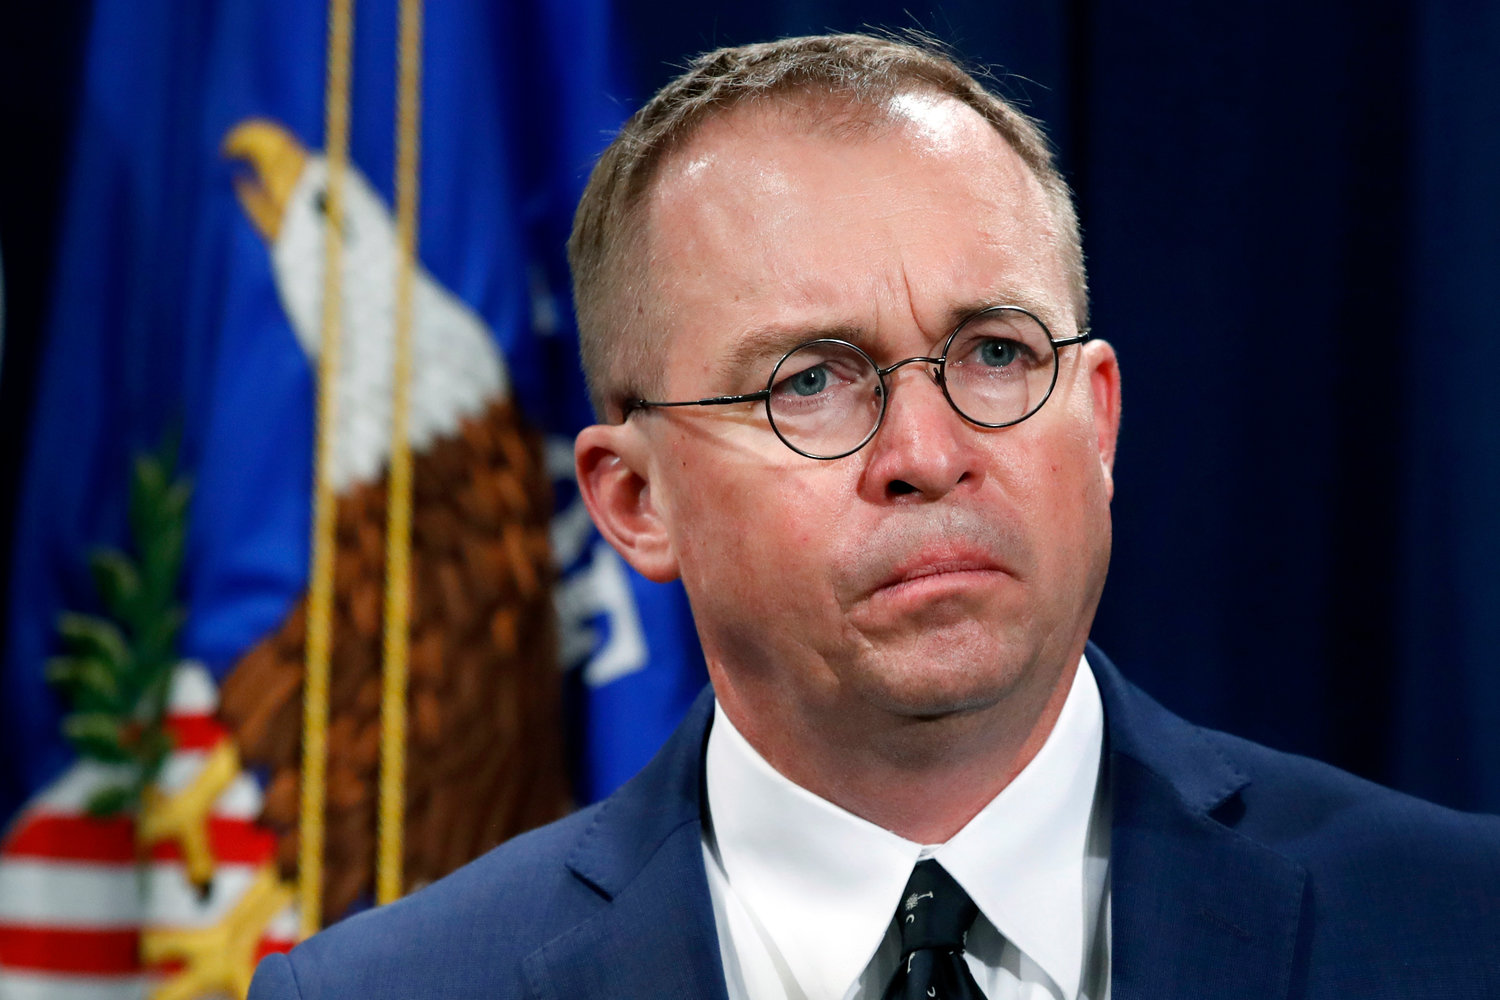 In this July 11, 2018, file photo Mick Mulvaney, acting director of the Consumer Financial Protection Bureau (CFPB), and Director of the Office of Management, listens during a news conference at the Department of Justice in Washington. White House Acting Chief of Staff Mick Mulvaney isn't setting any lofty goals for this weekend's meeting with a bipartisan mix of legislators at Camp David, but he is trying to build relationships across the aisle. (AP Photo/Jacquelyn Martin, File)